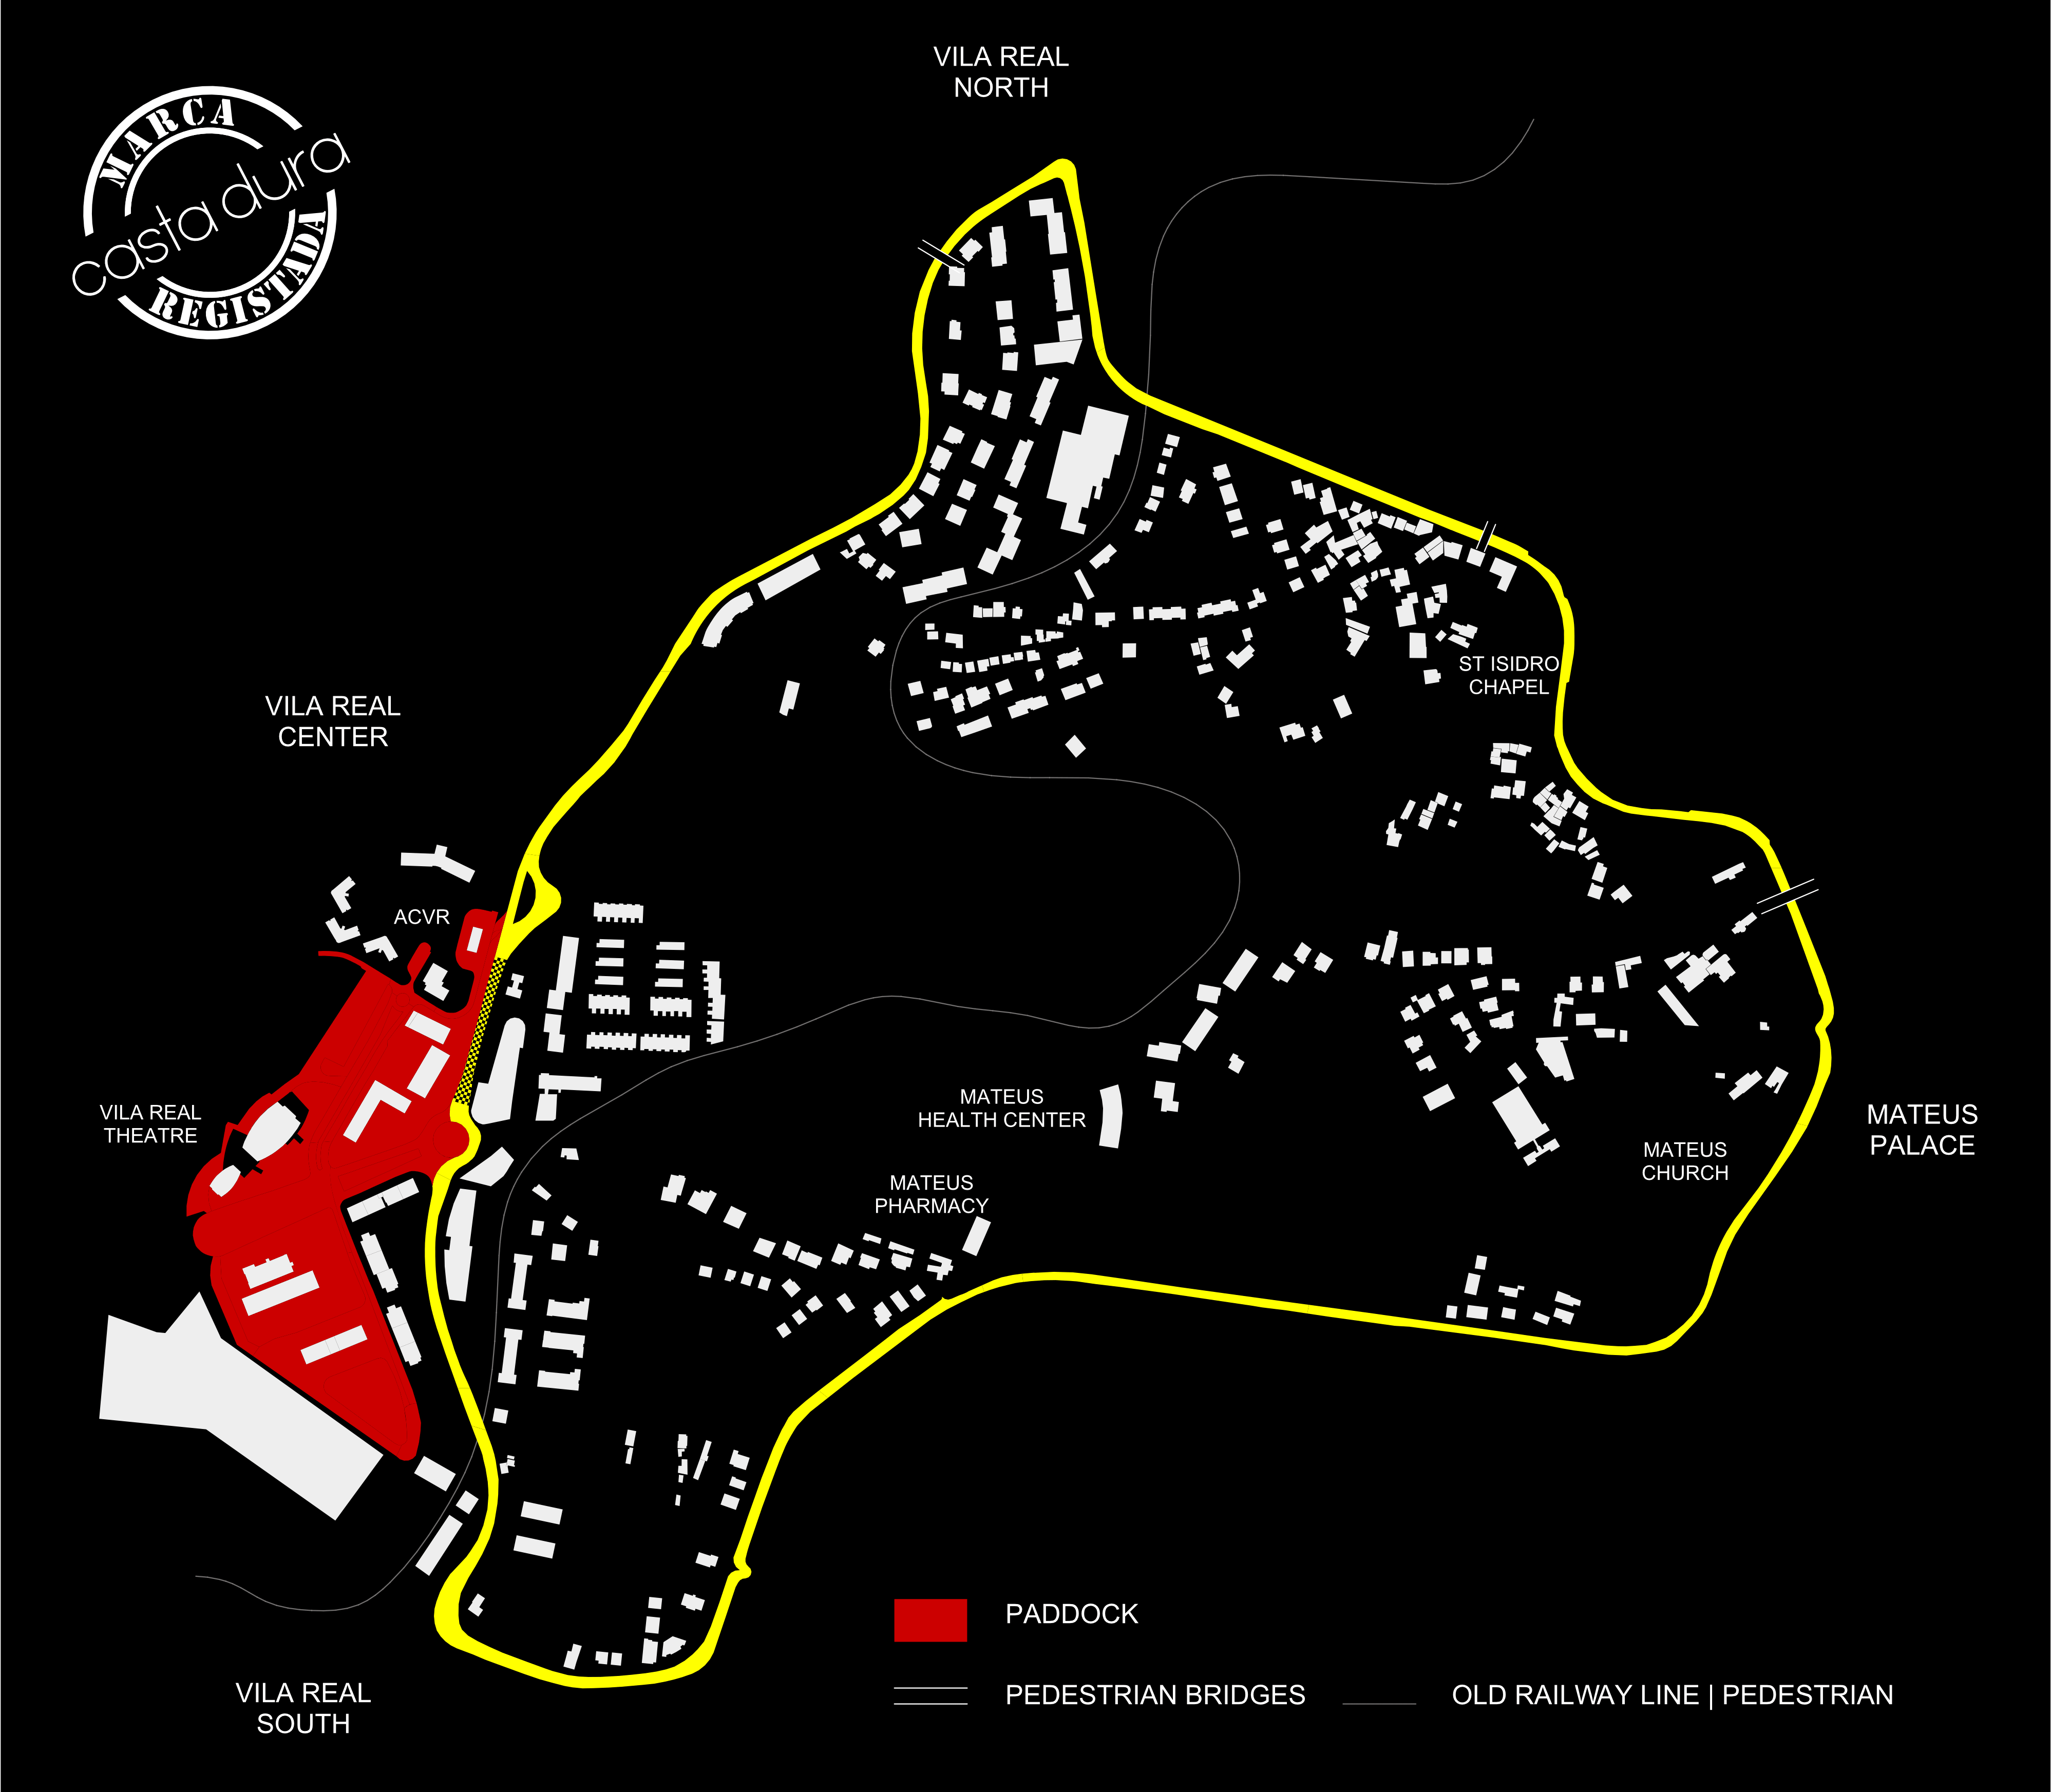 Mapa do Circuito Internacional de Vila Real